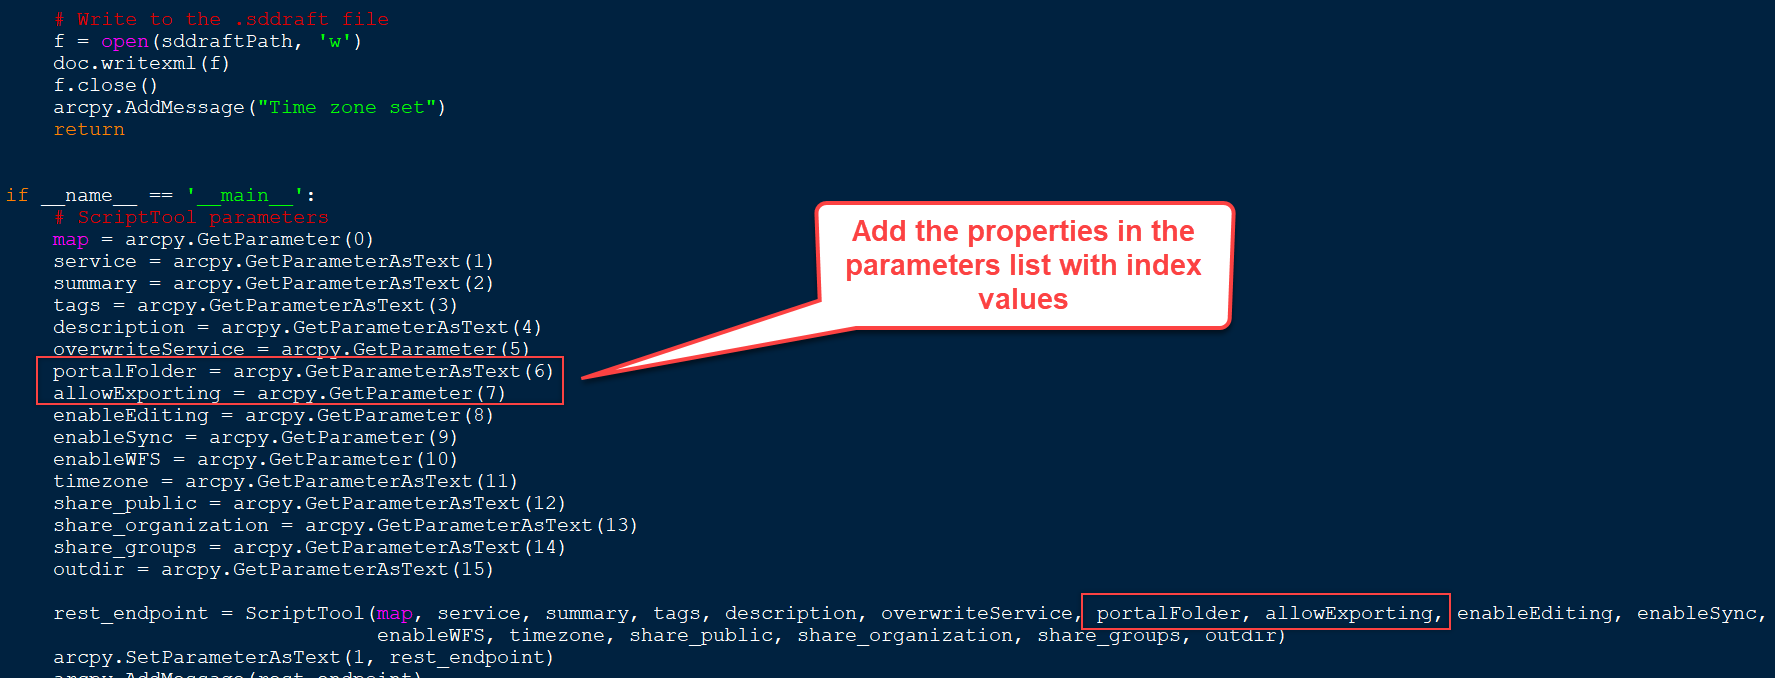 Modify the Python file to include portal and export properties